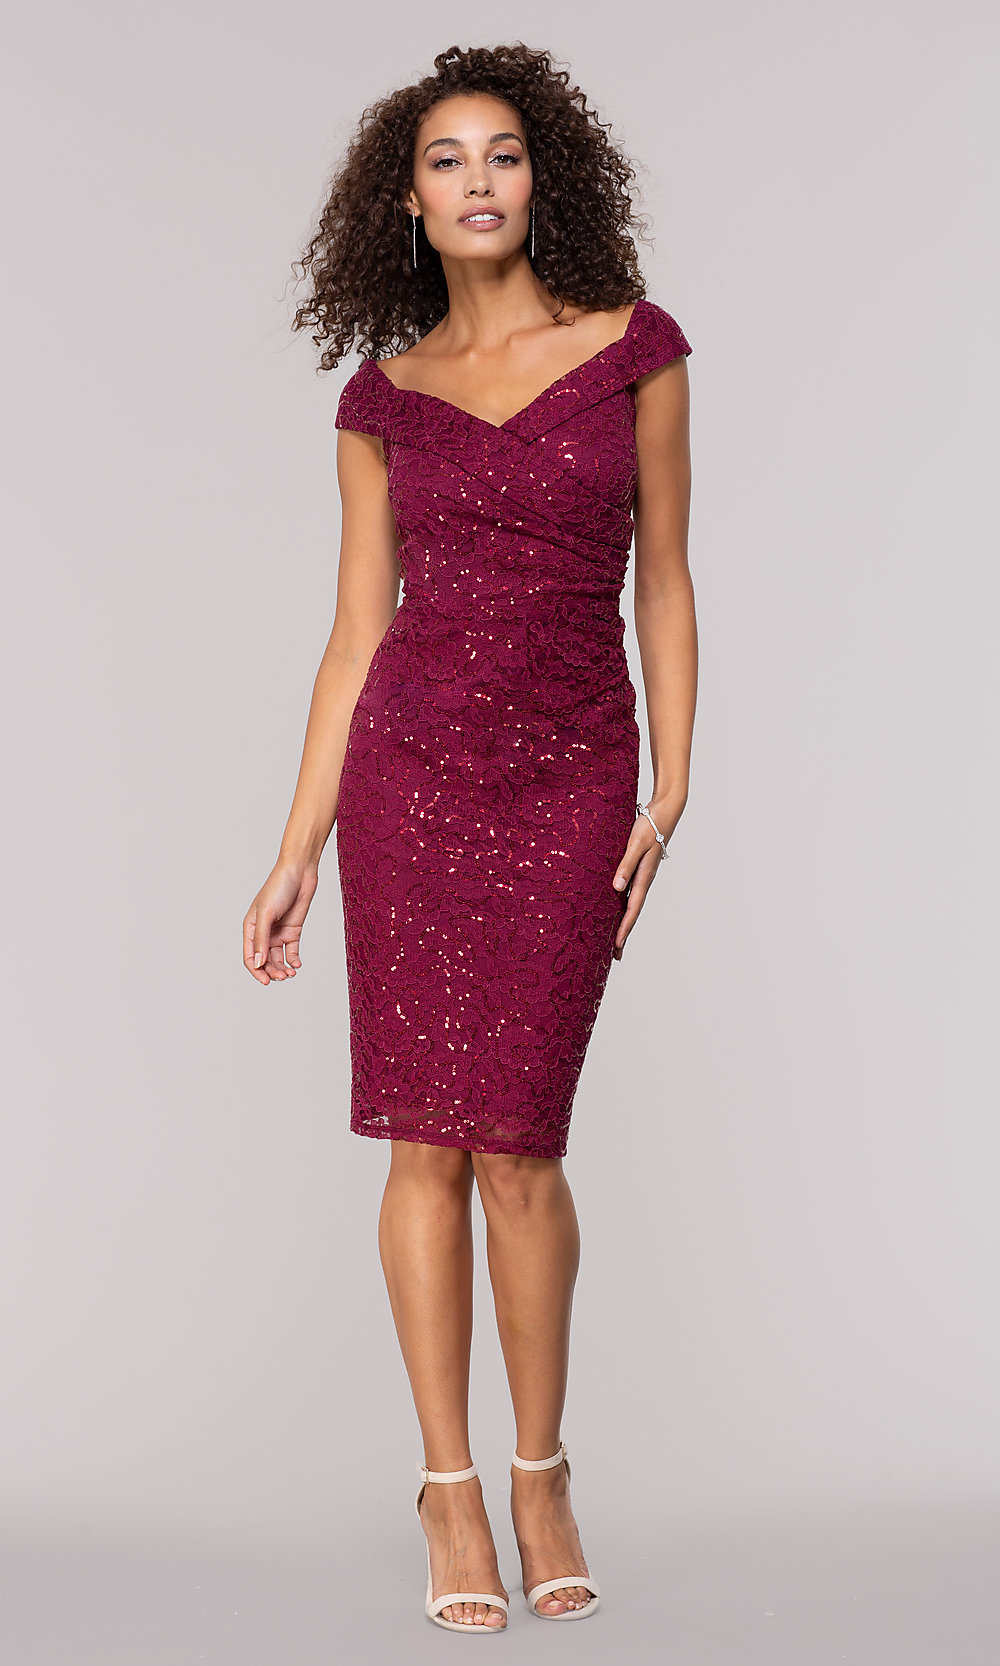 03c83575941 Burgundy Red Lace Wedding-Guest Short Party Dress